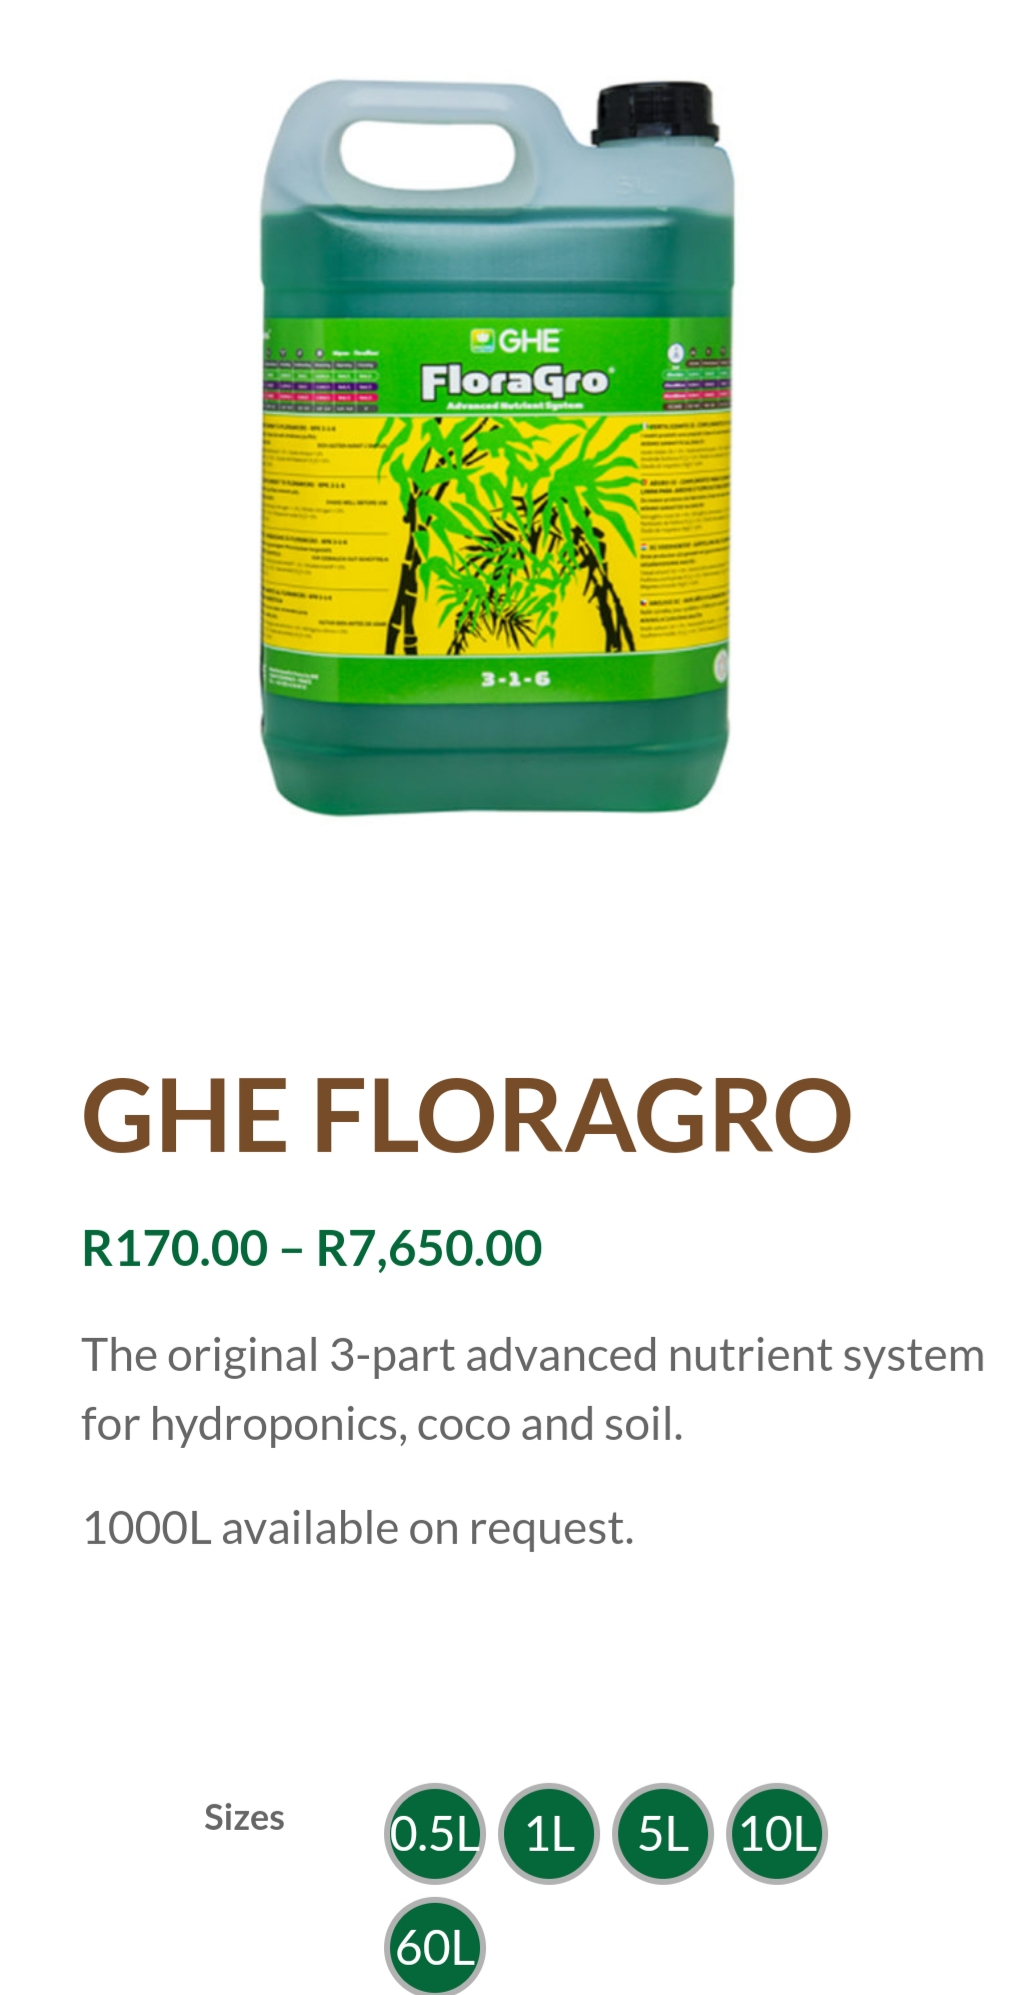 GHE Floragro Plant Nutrients